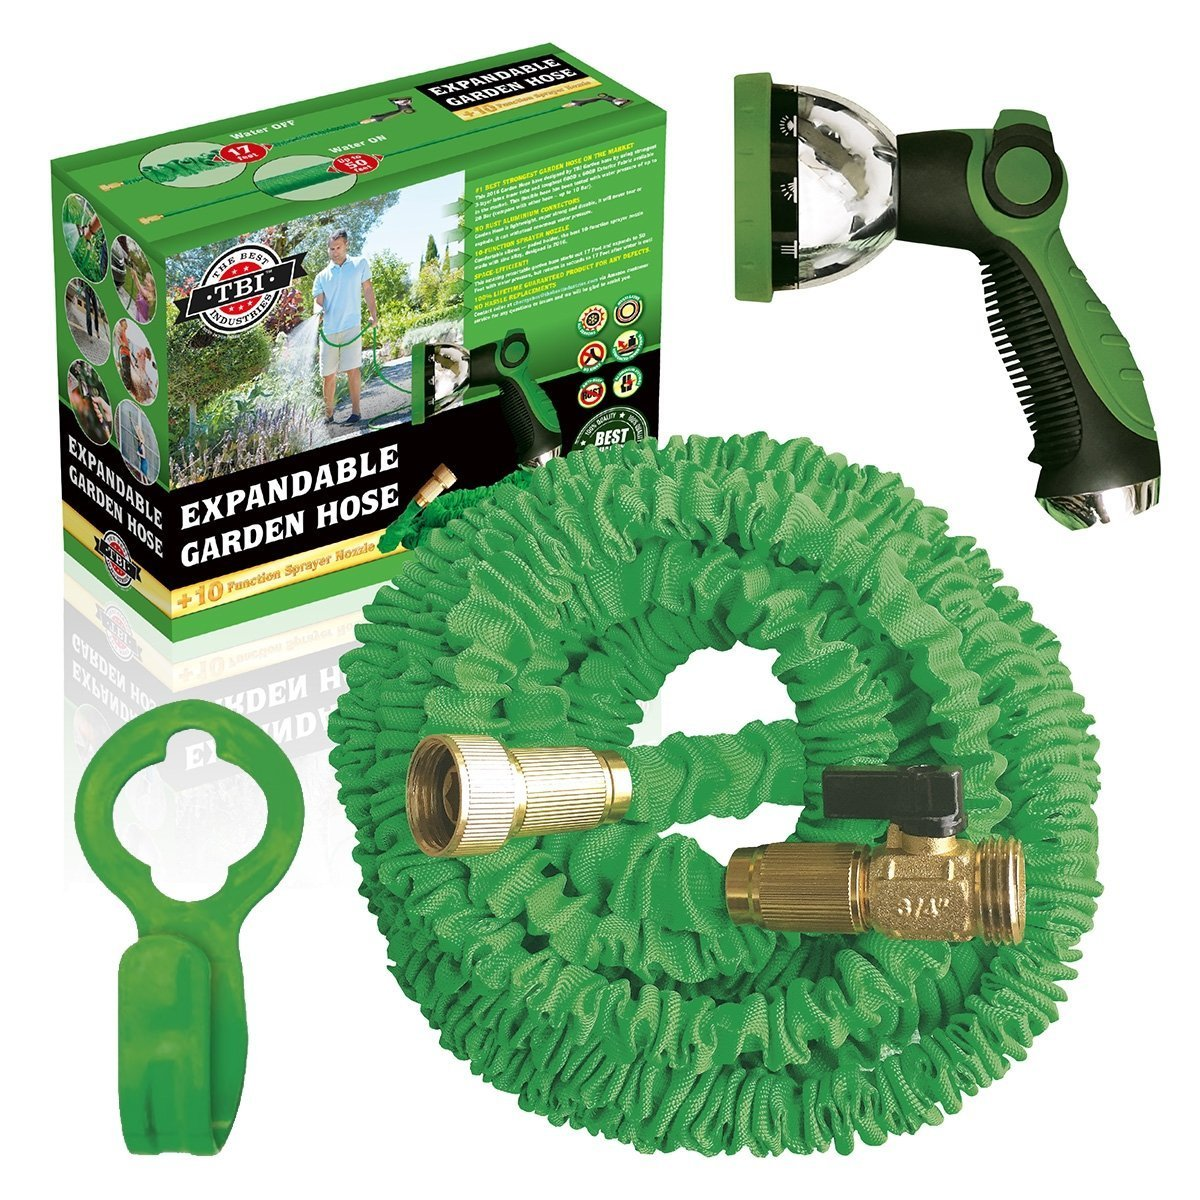 The Top 10 Best Water Hoses Reviews for your Gardening Works